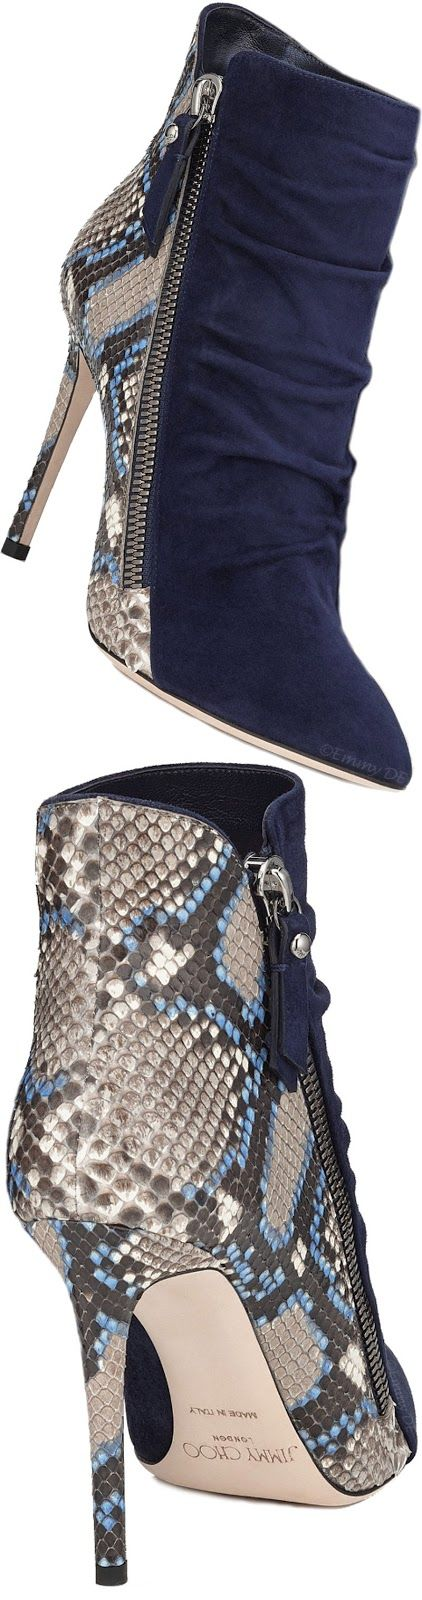 5e74313e9a4d5 ♢Jimmy Choo FW 2016 - PerfectLifestyle.info - News for a perfect ...